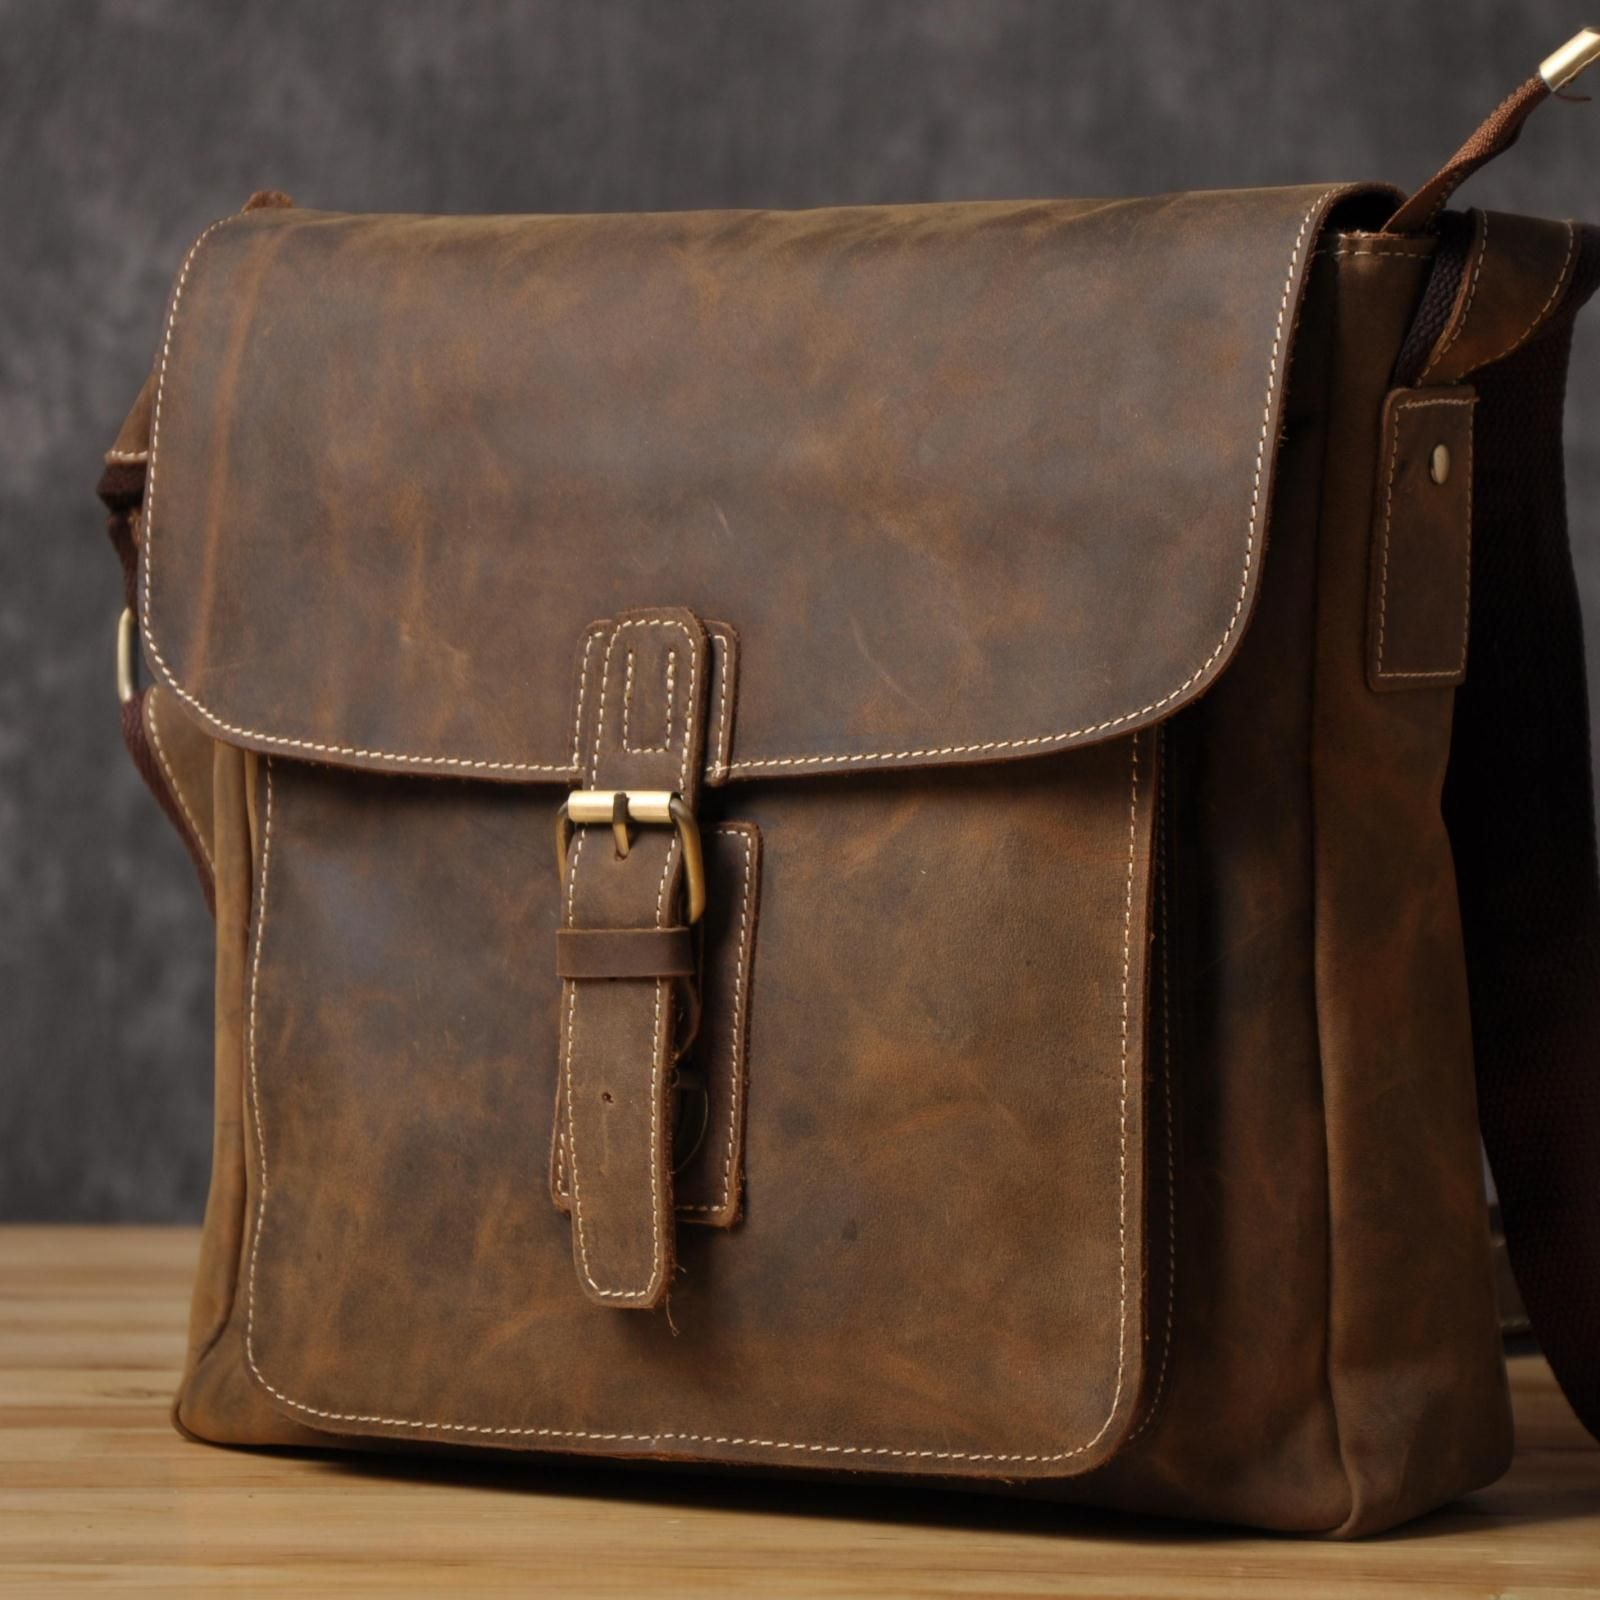 European And American Handmade Leather Man Bag British Retro Crazy Horsehide Do The Old Messenger Shoulder Origina Online With